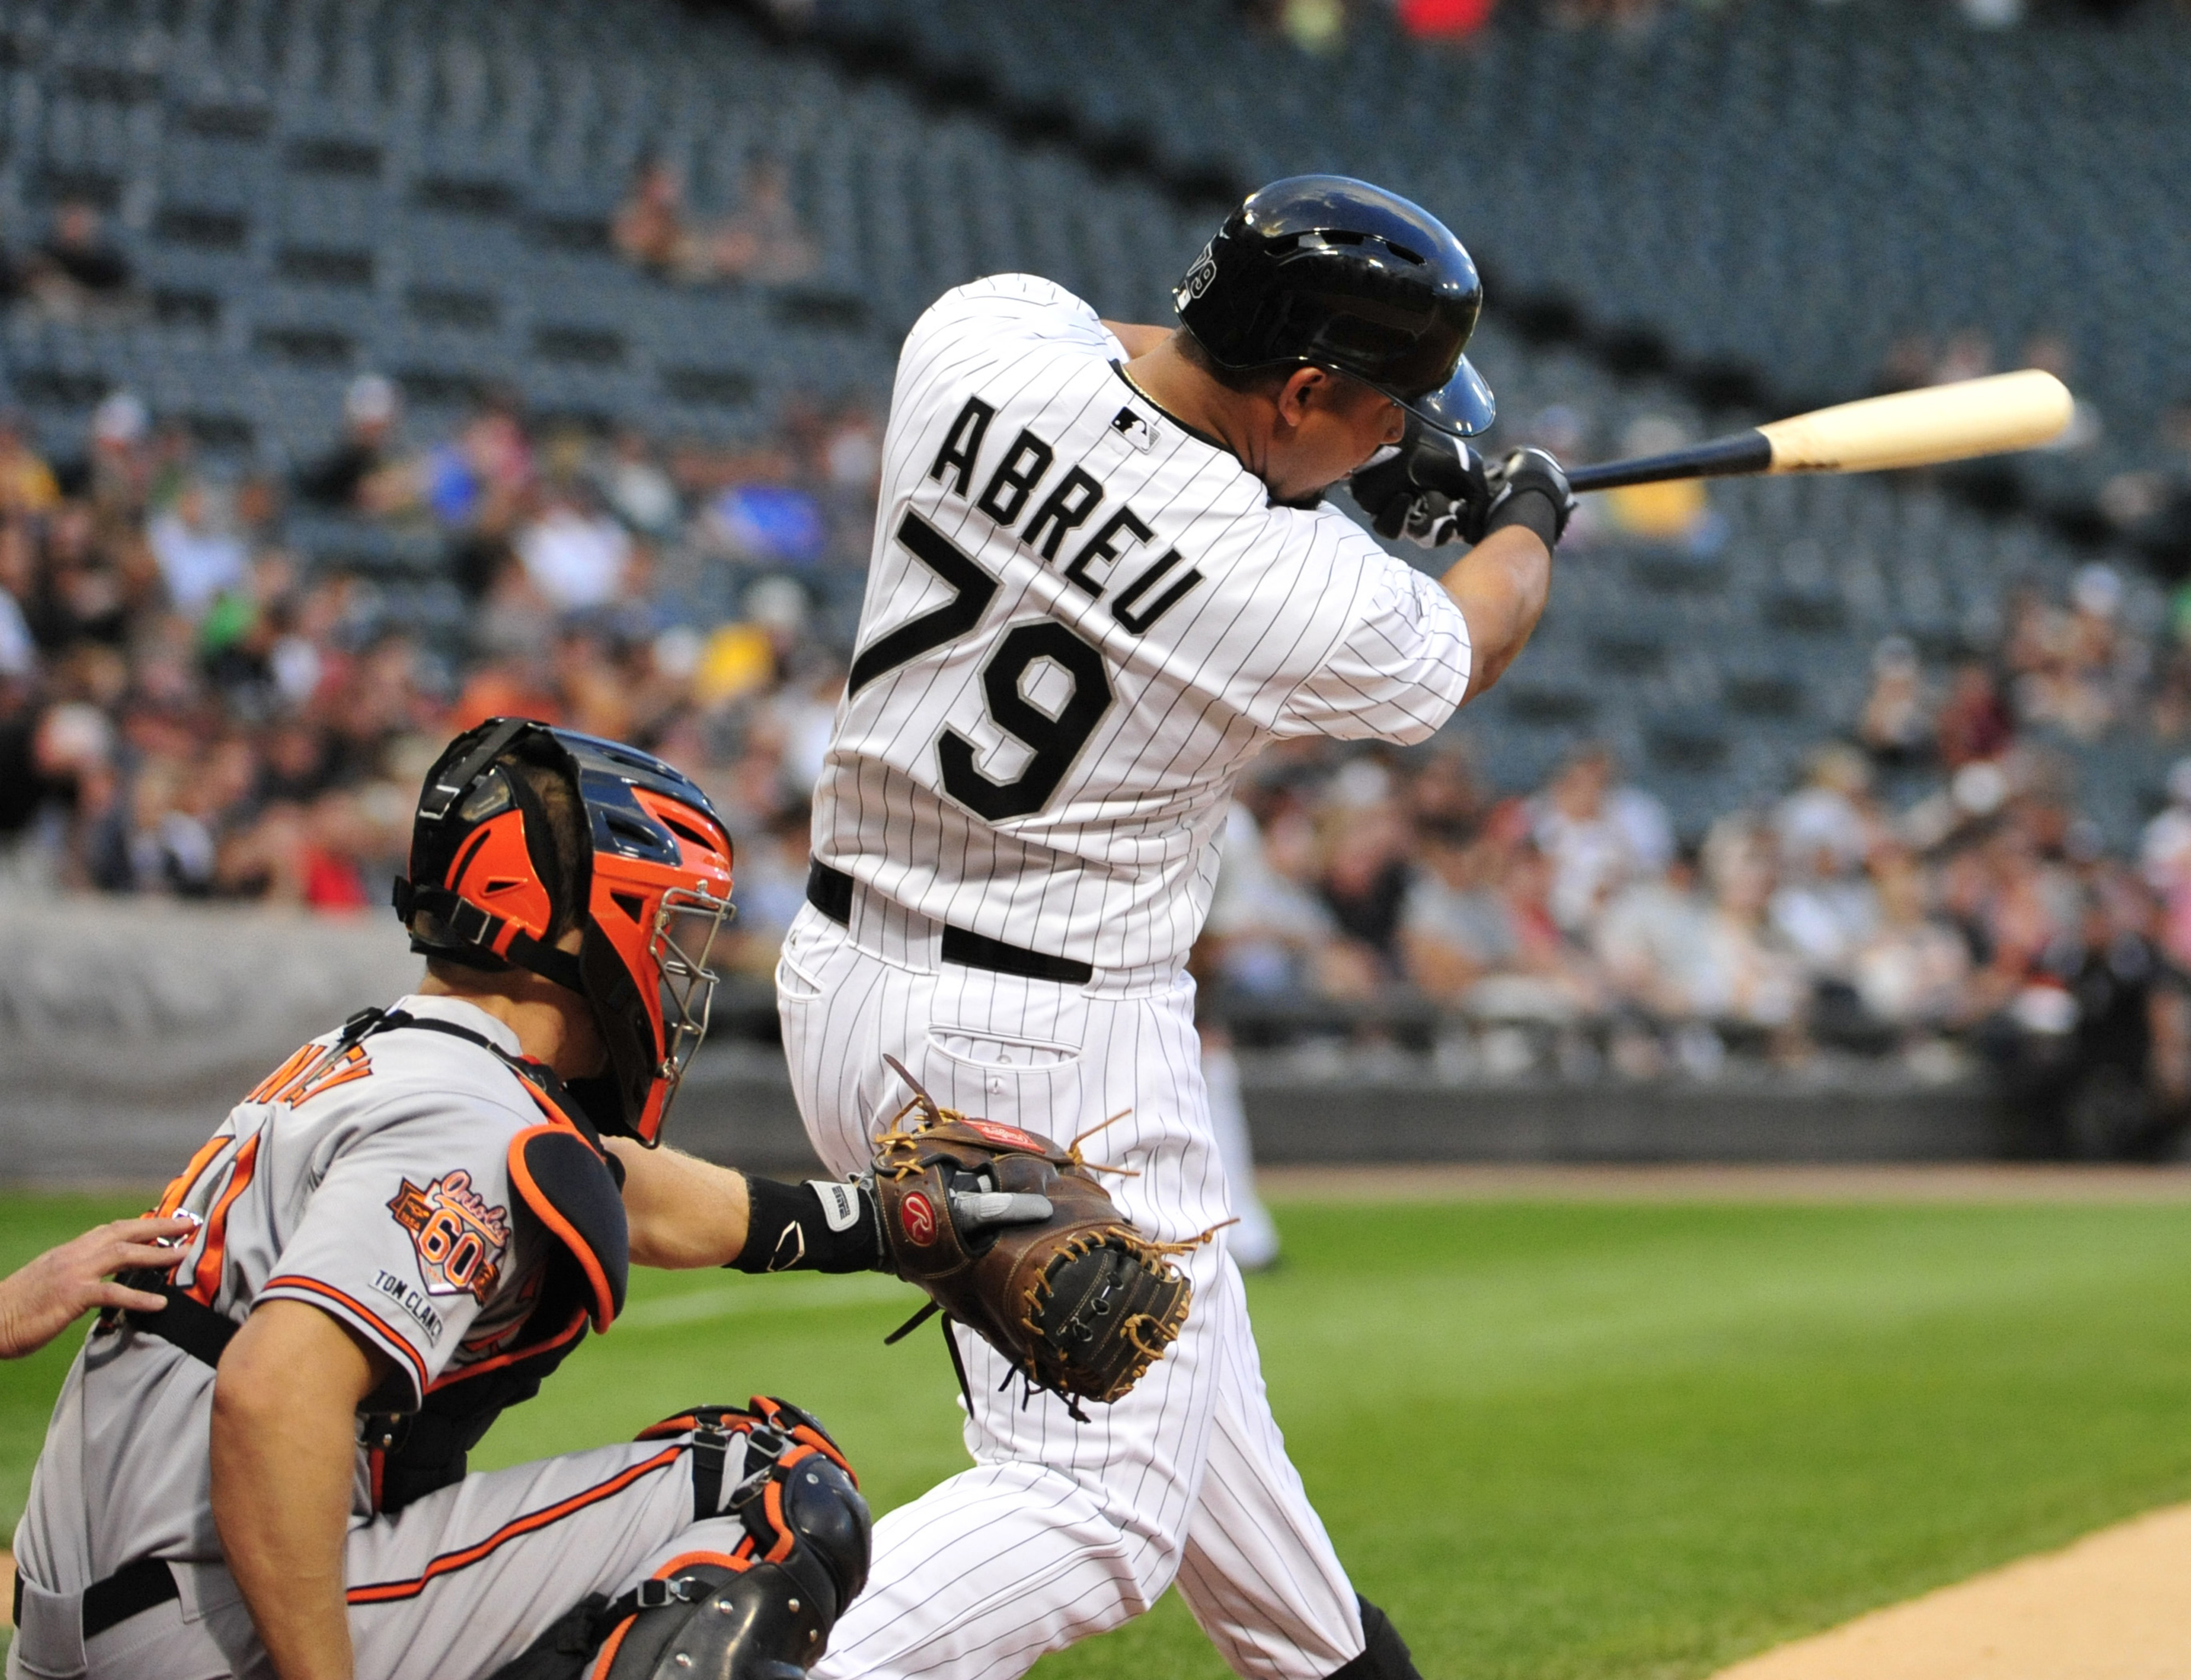 Finally, a real hitter on the South Side! Abreu earns an A+.